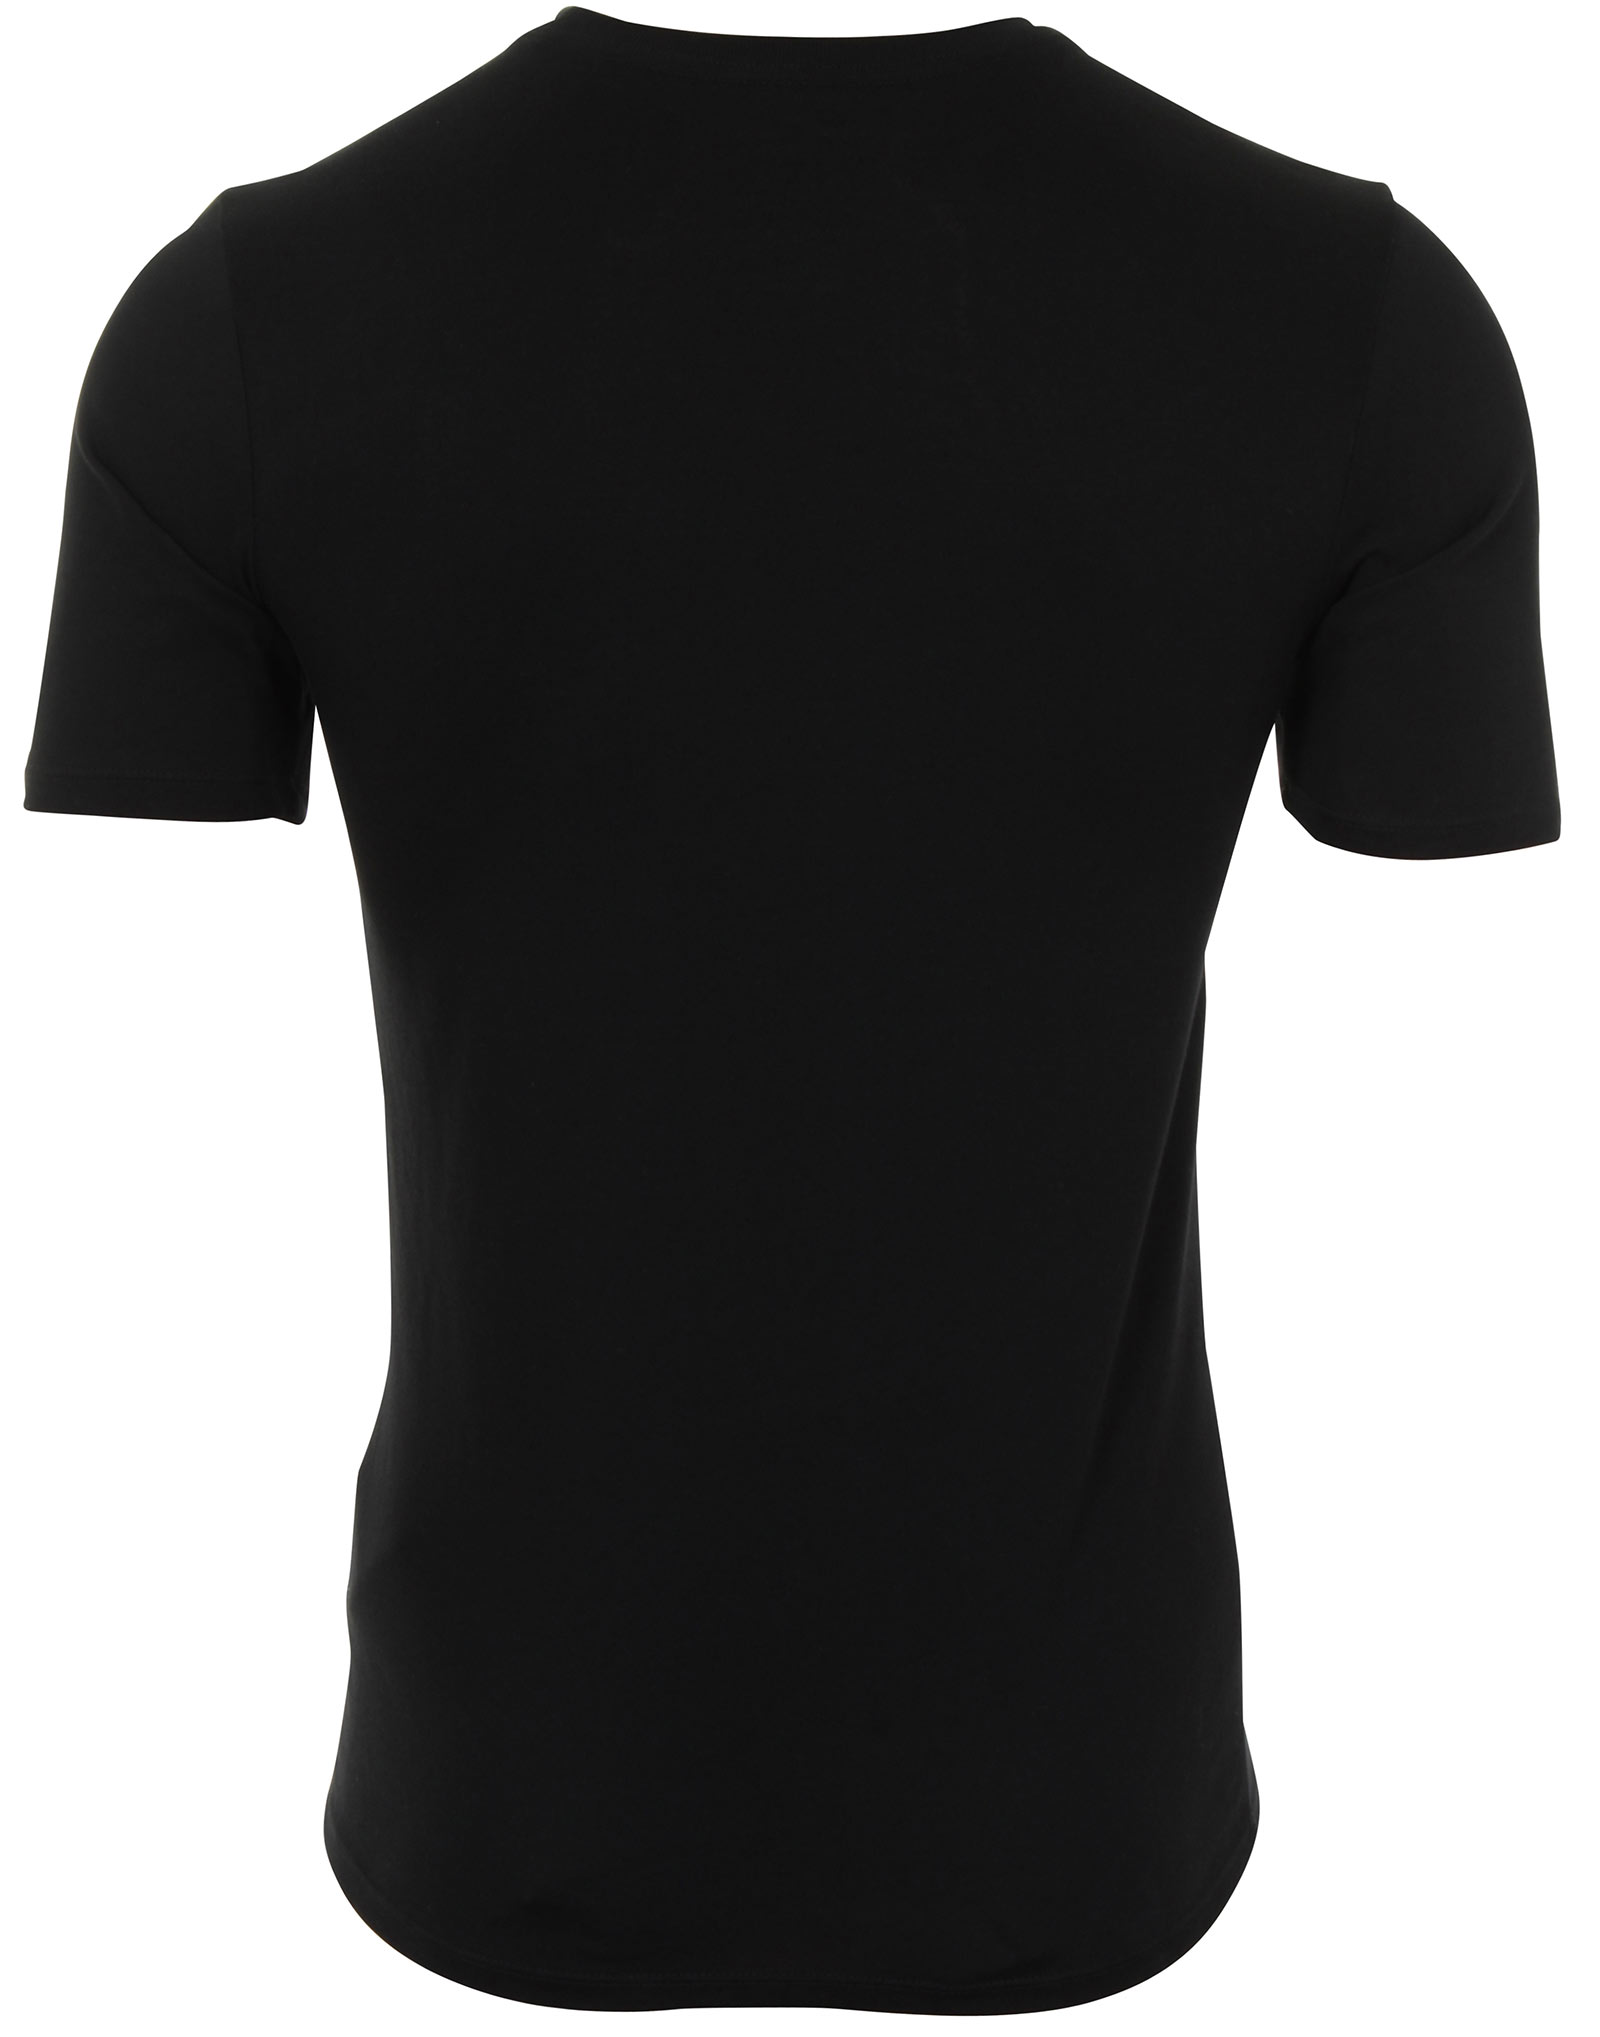 239c68a4 NEW NIKE HOOP Arrow Mens T-shirt ALL SIZES - £17.99 | PicClick UK